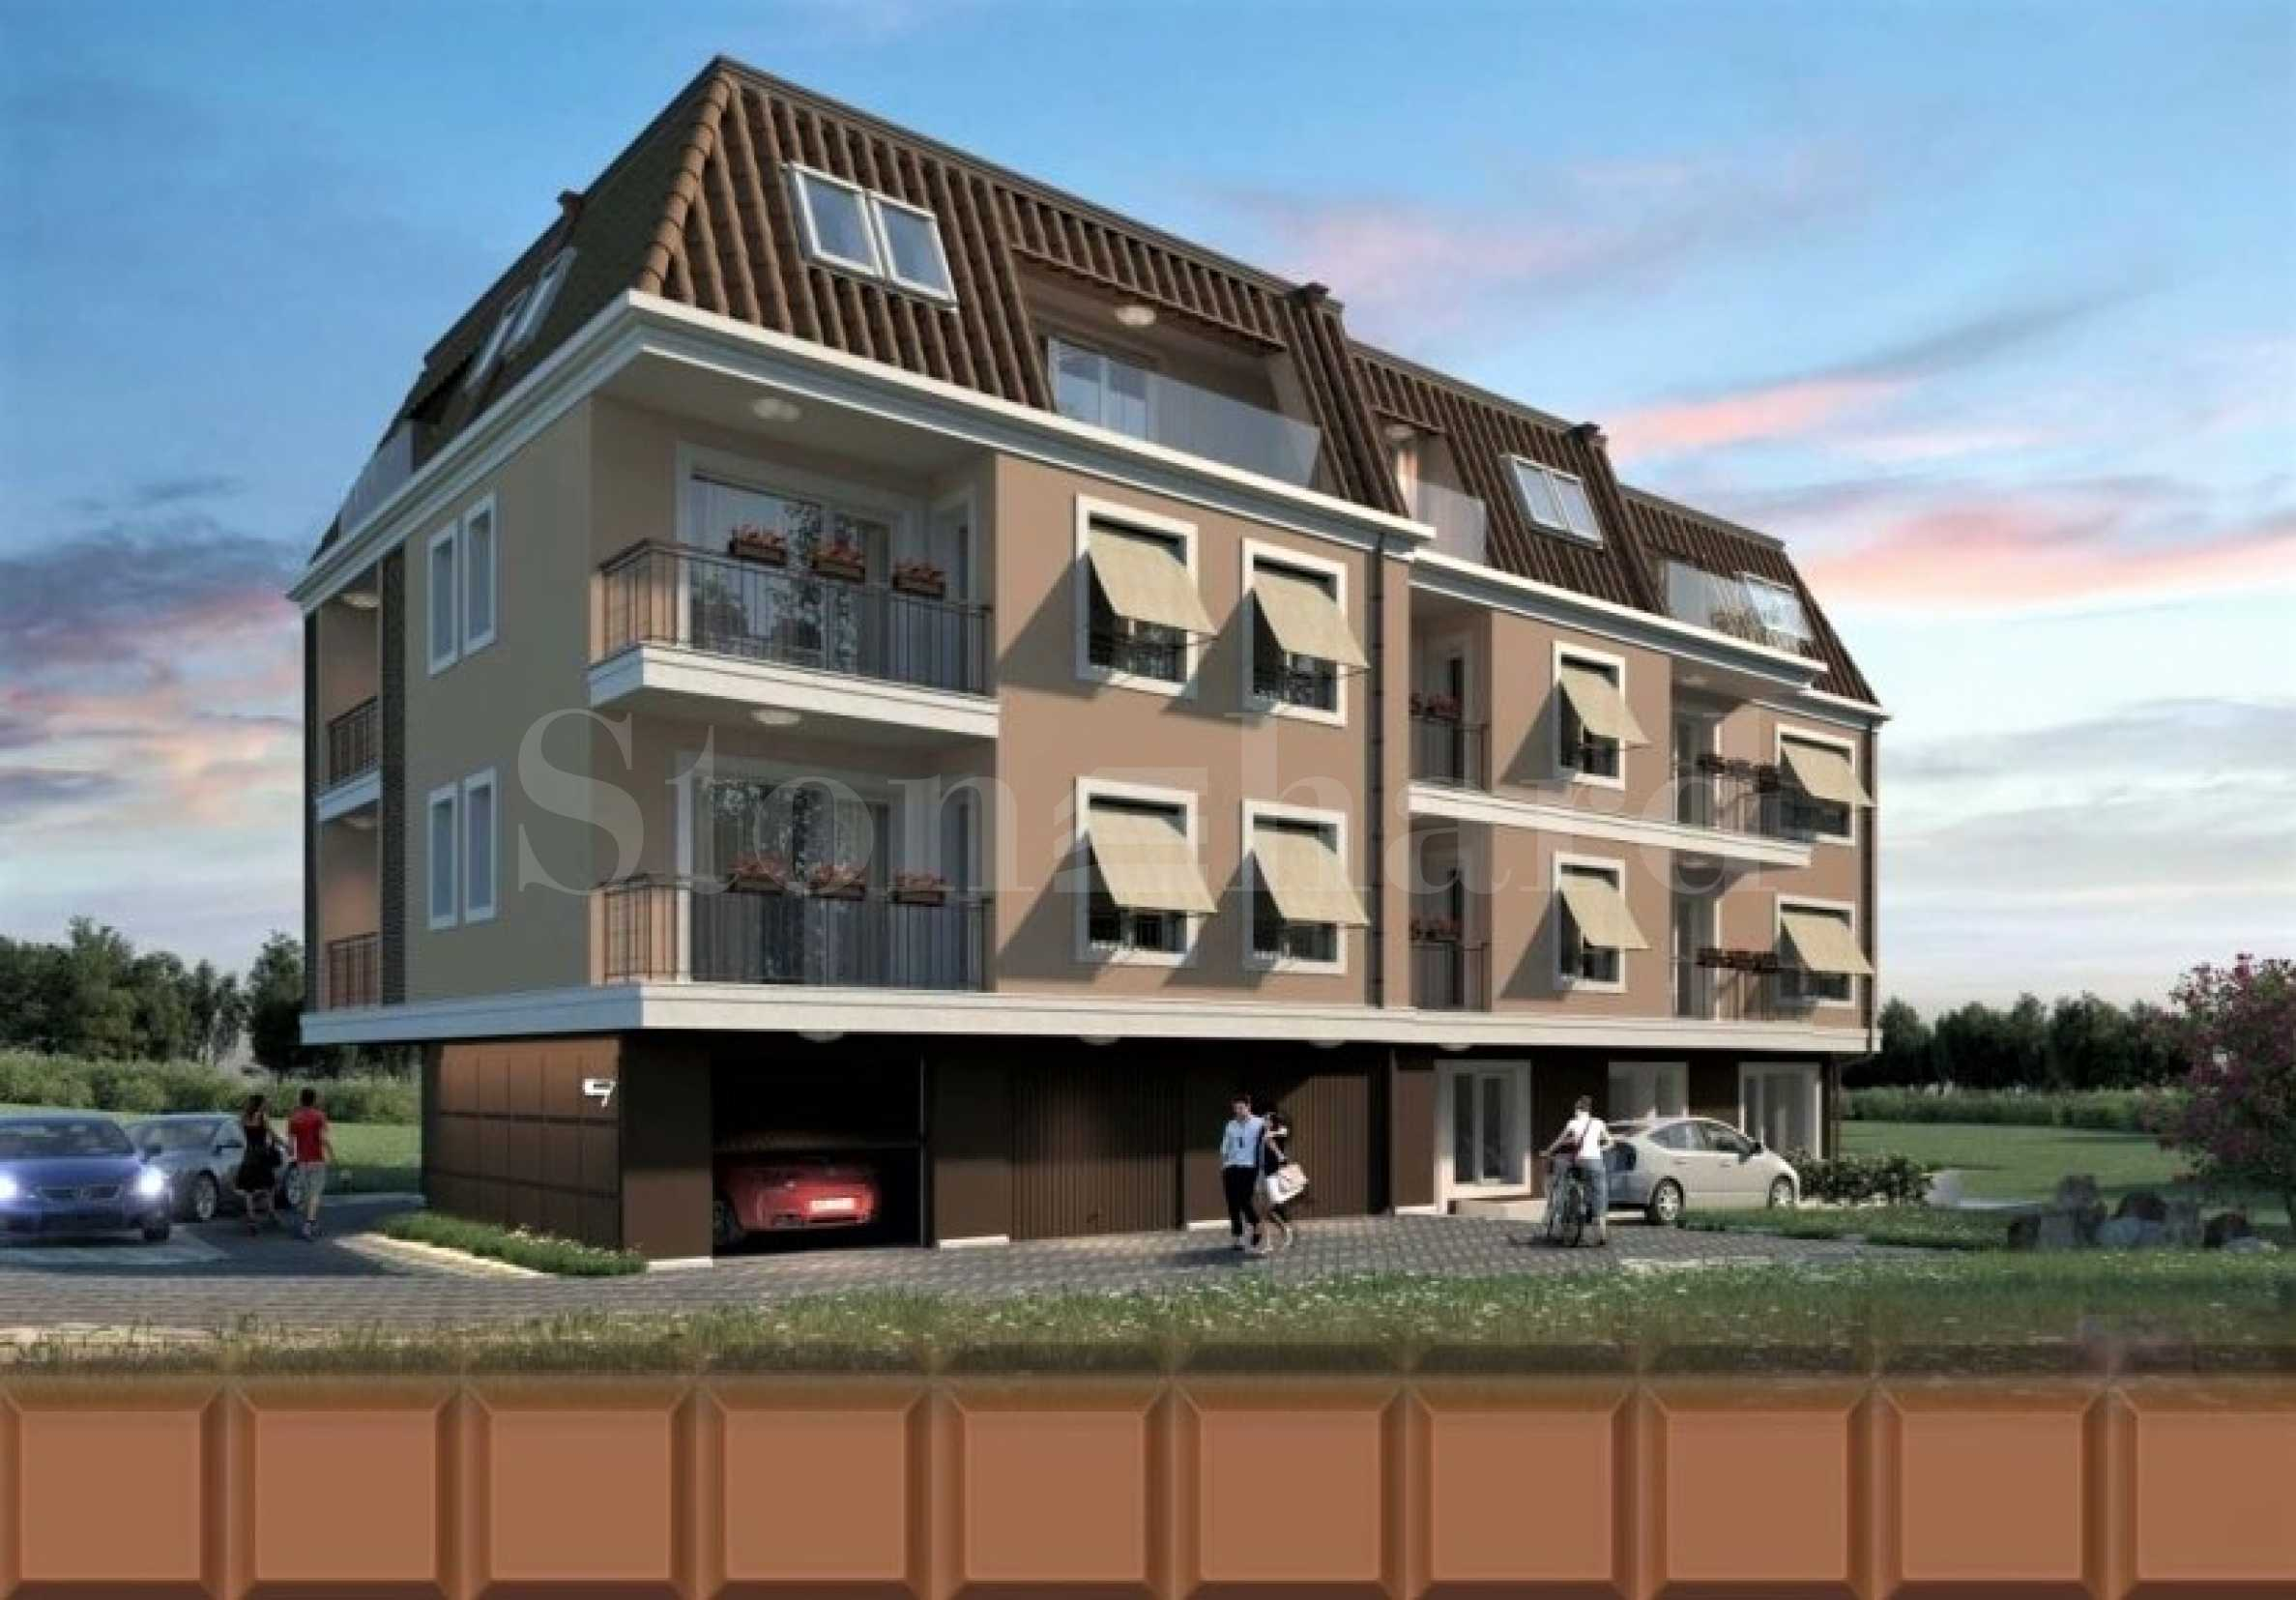 Apartments and parking spaces for sale in a new attractive building2 - Stonehard